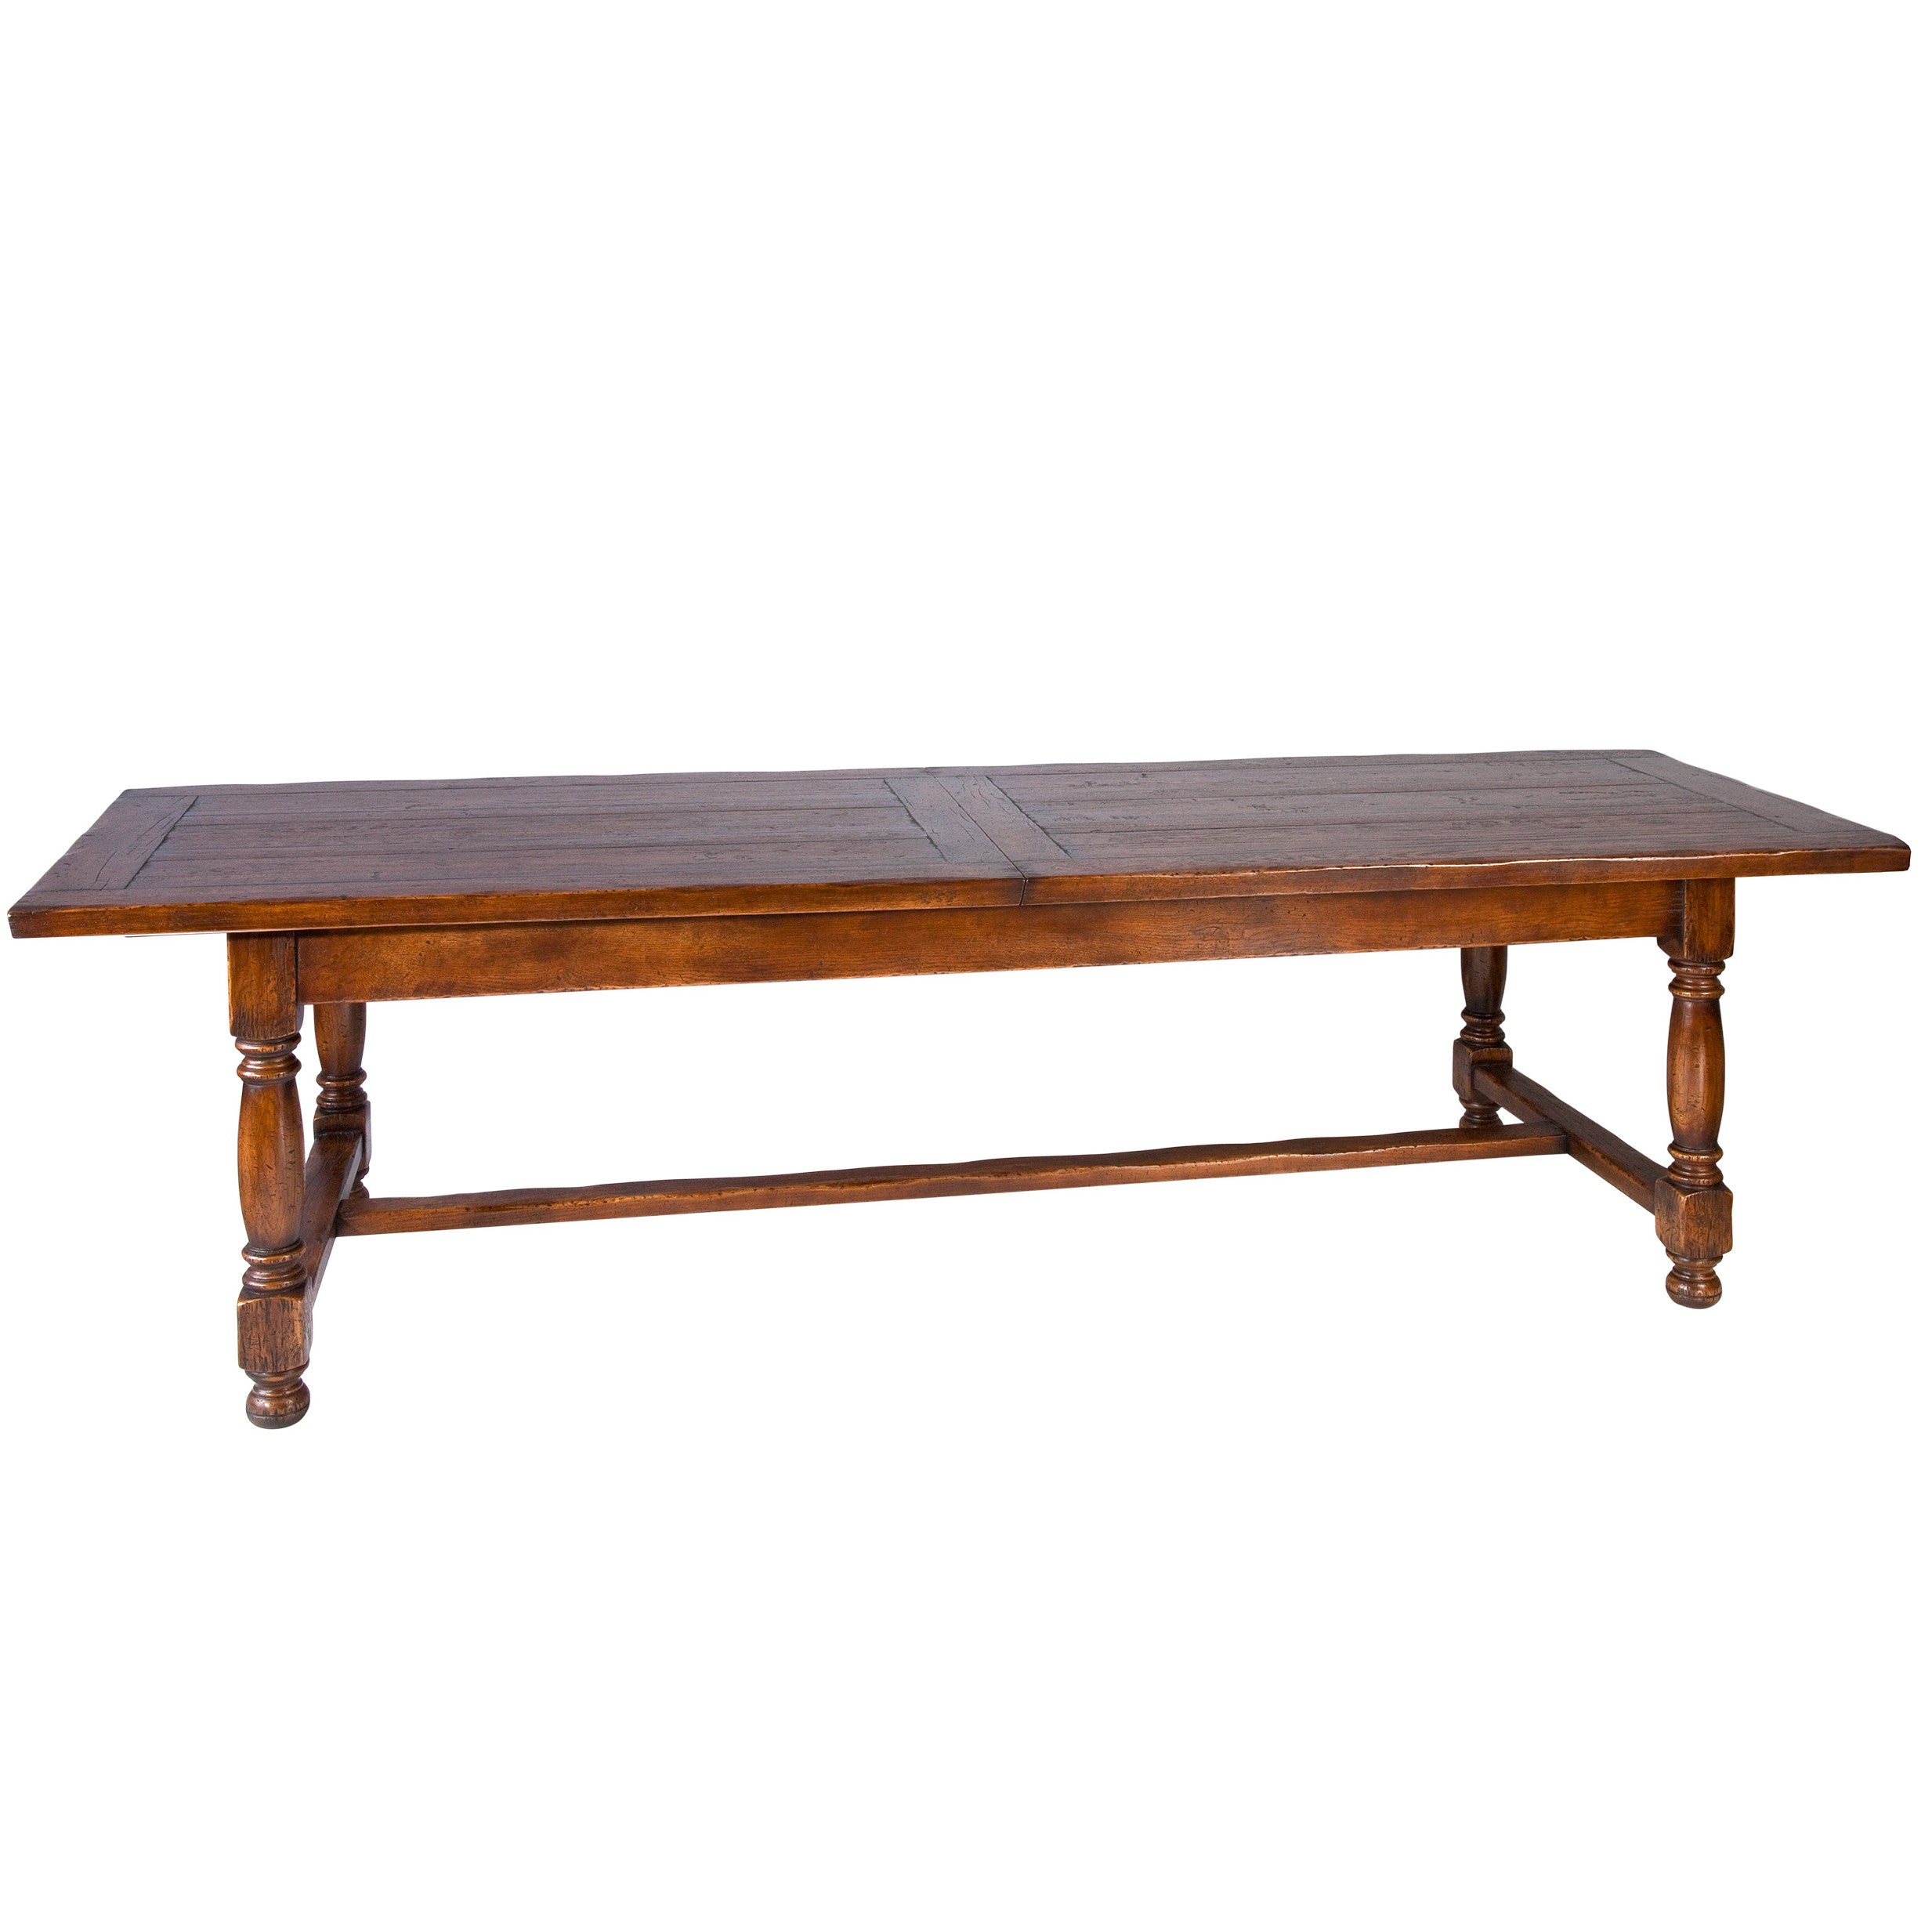 Dumas Table, Natural